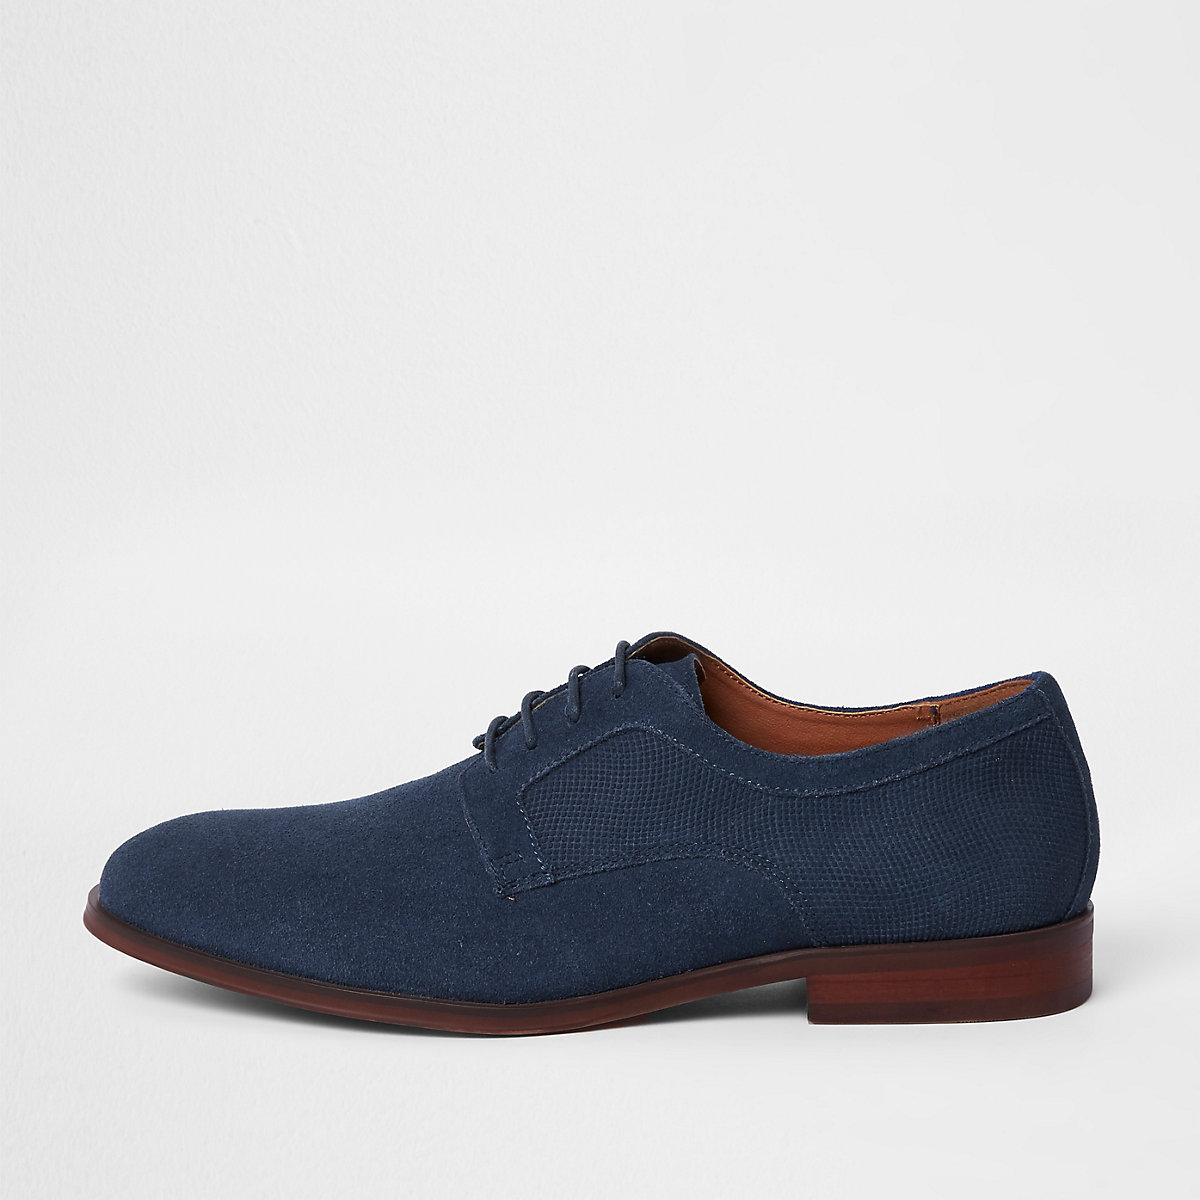 Blue suede textured derby shoes